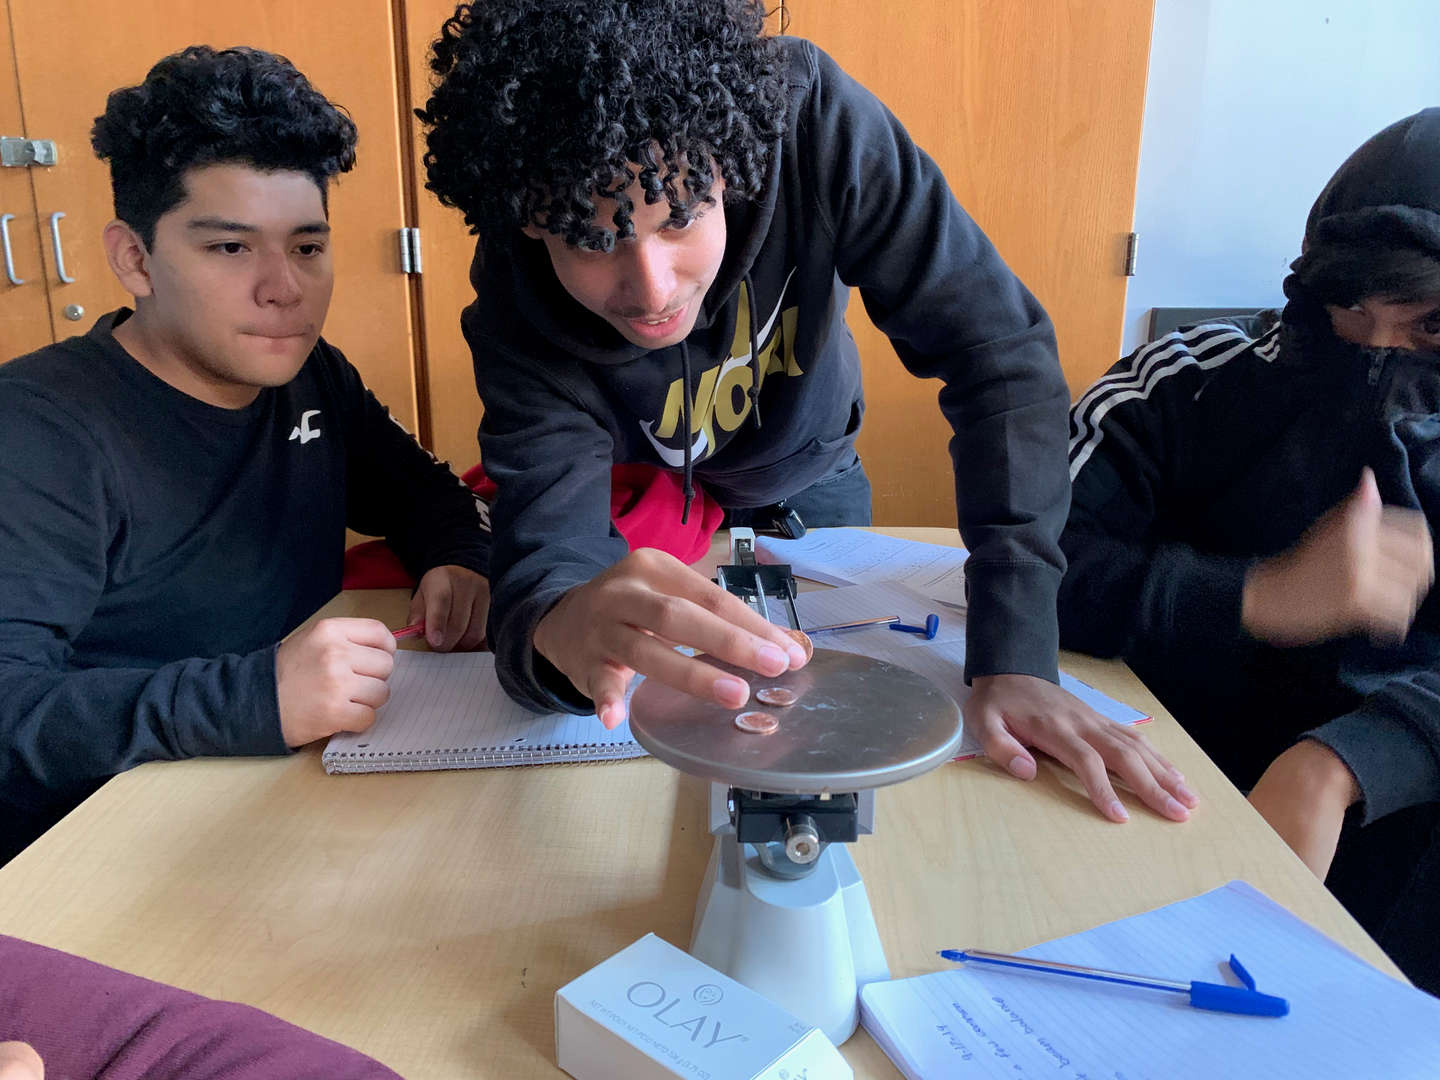 Students calibrate a scale in class